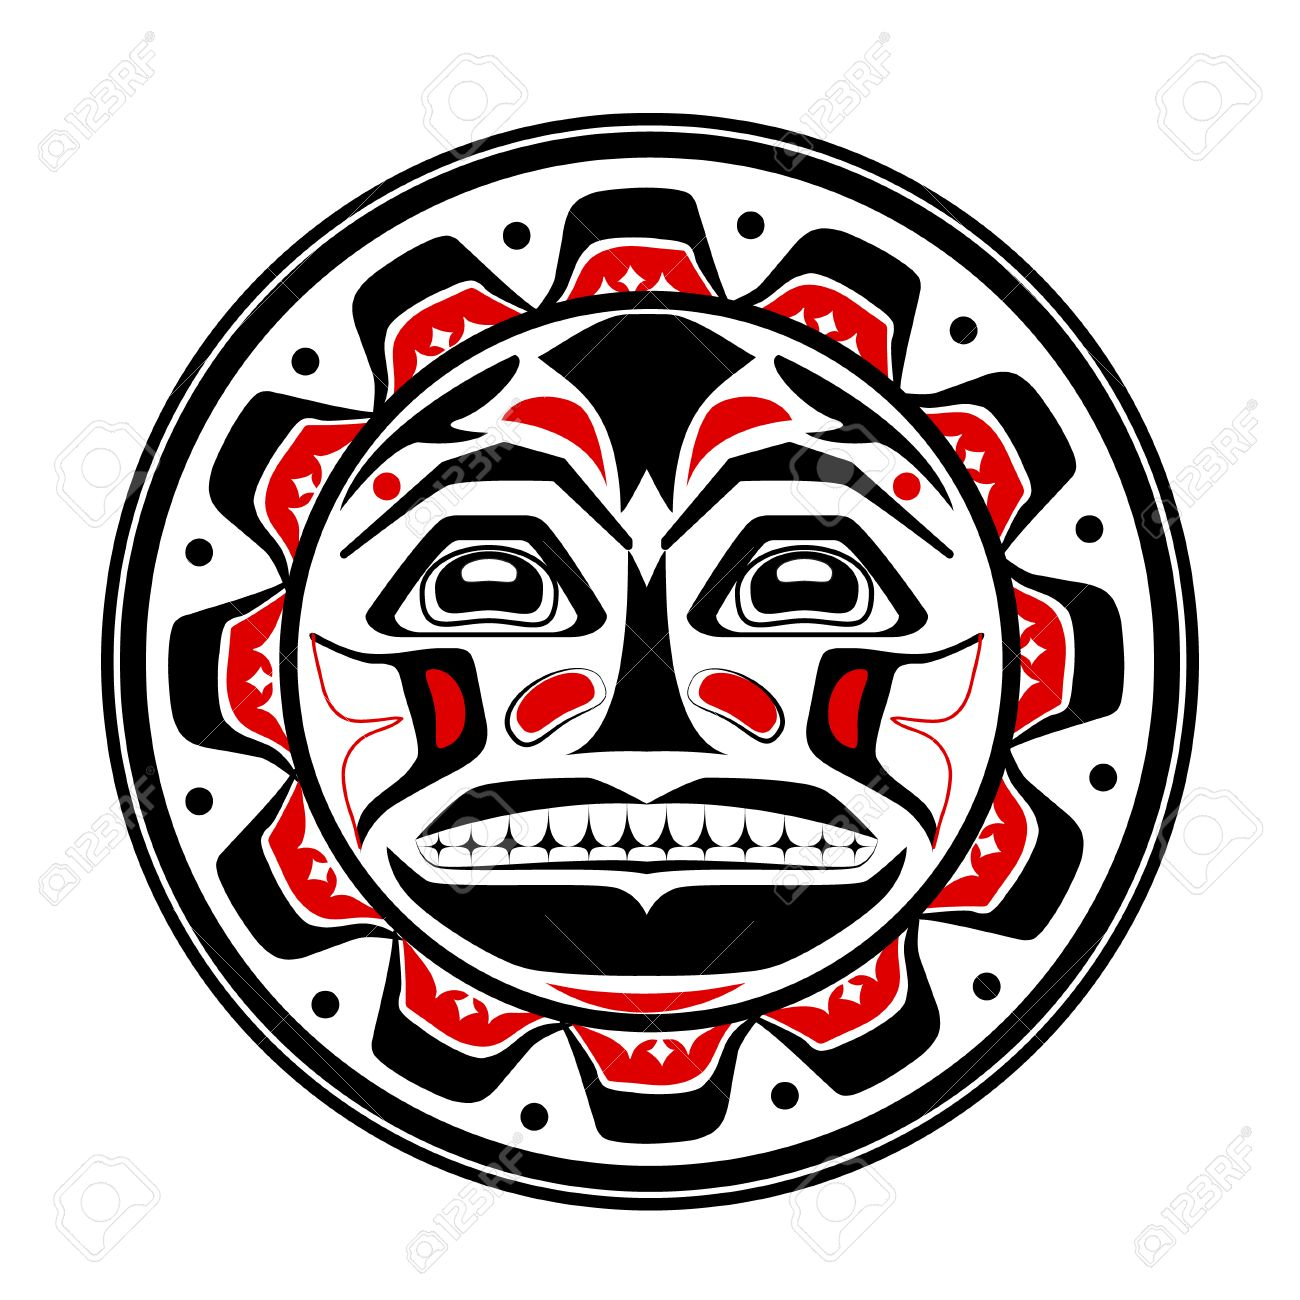 Totem pole tattoo stock photos royalty free business images vector illustration of the sun symbol modern stylization of north american and canadian native art biocorpaavc Images